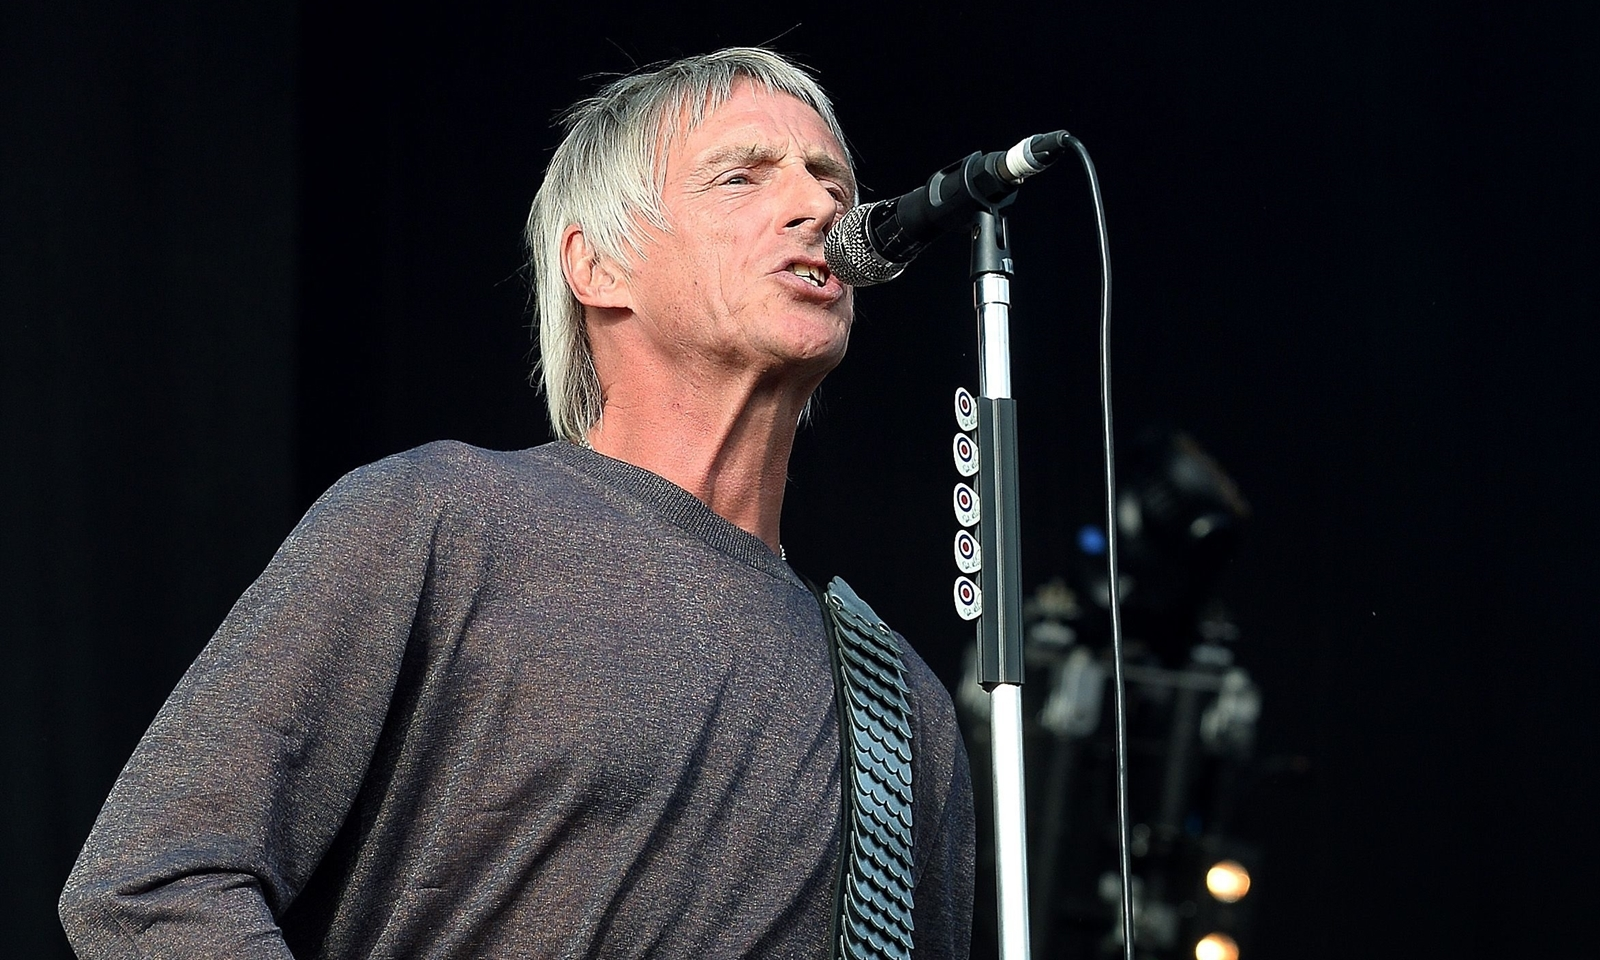 Paul Weller performs on stage at the Hard Rock calling music festival at Queen Elizabeth Olympic Park in Stratford east London.